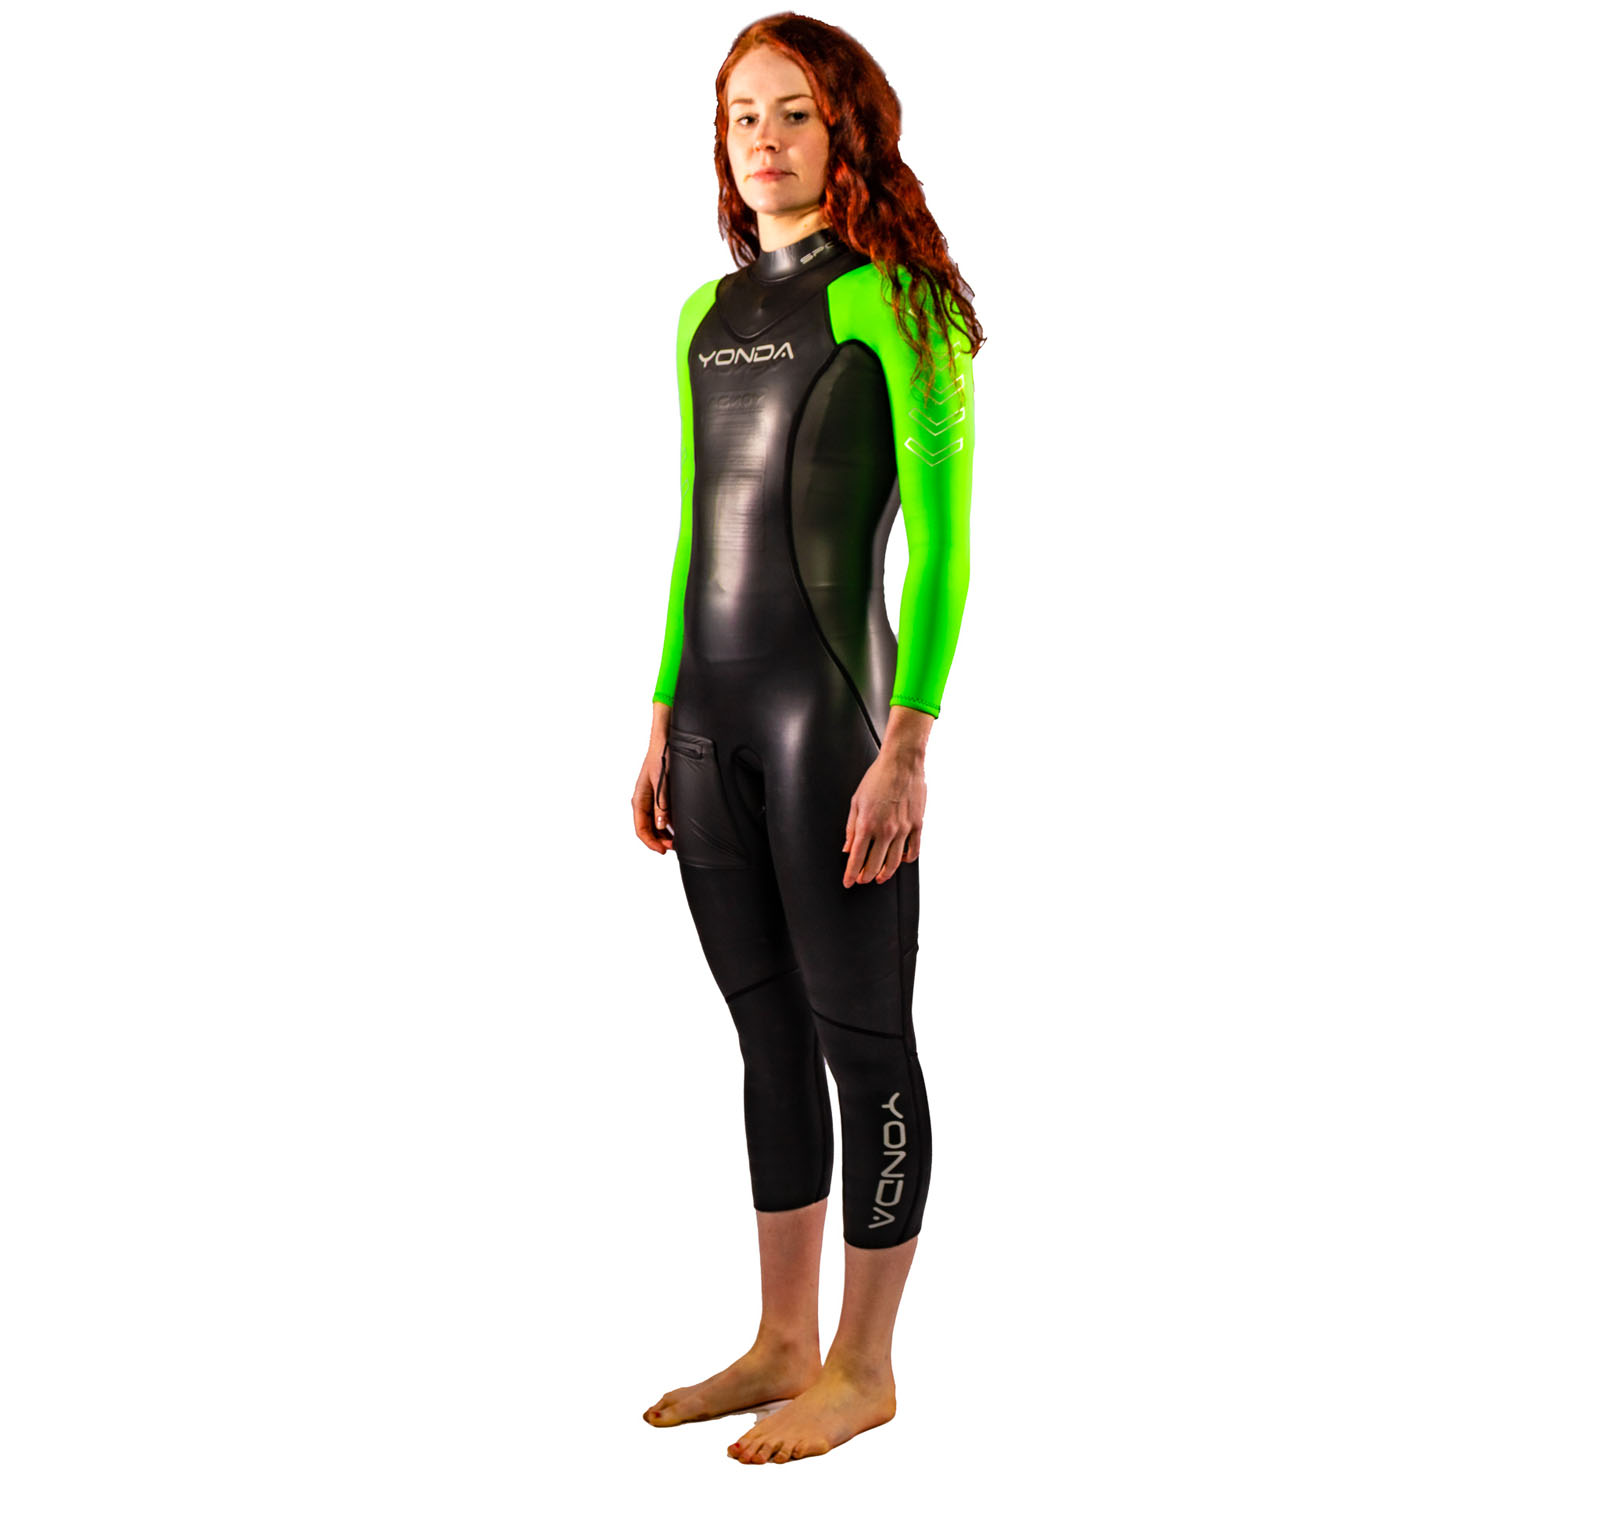 Yonda Spook Wetsuit - Women's Wetsuit | Clearance